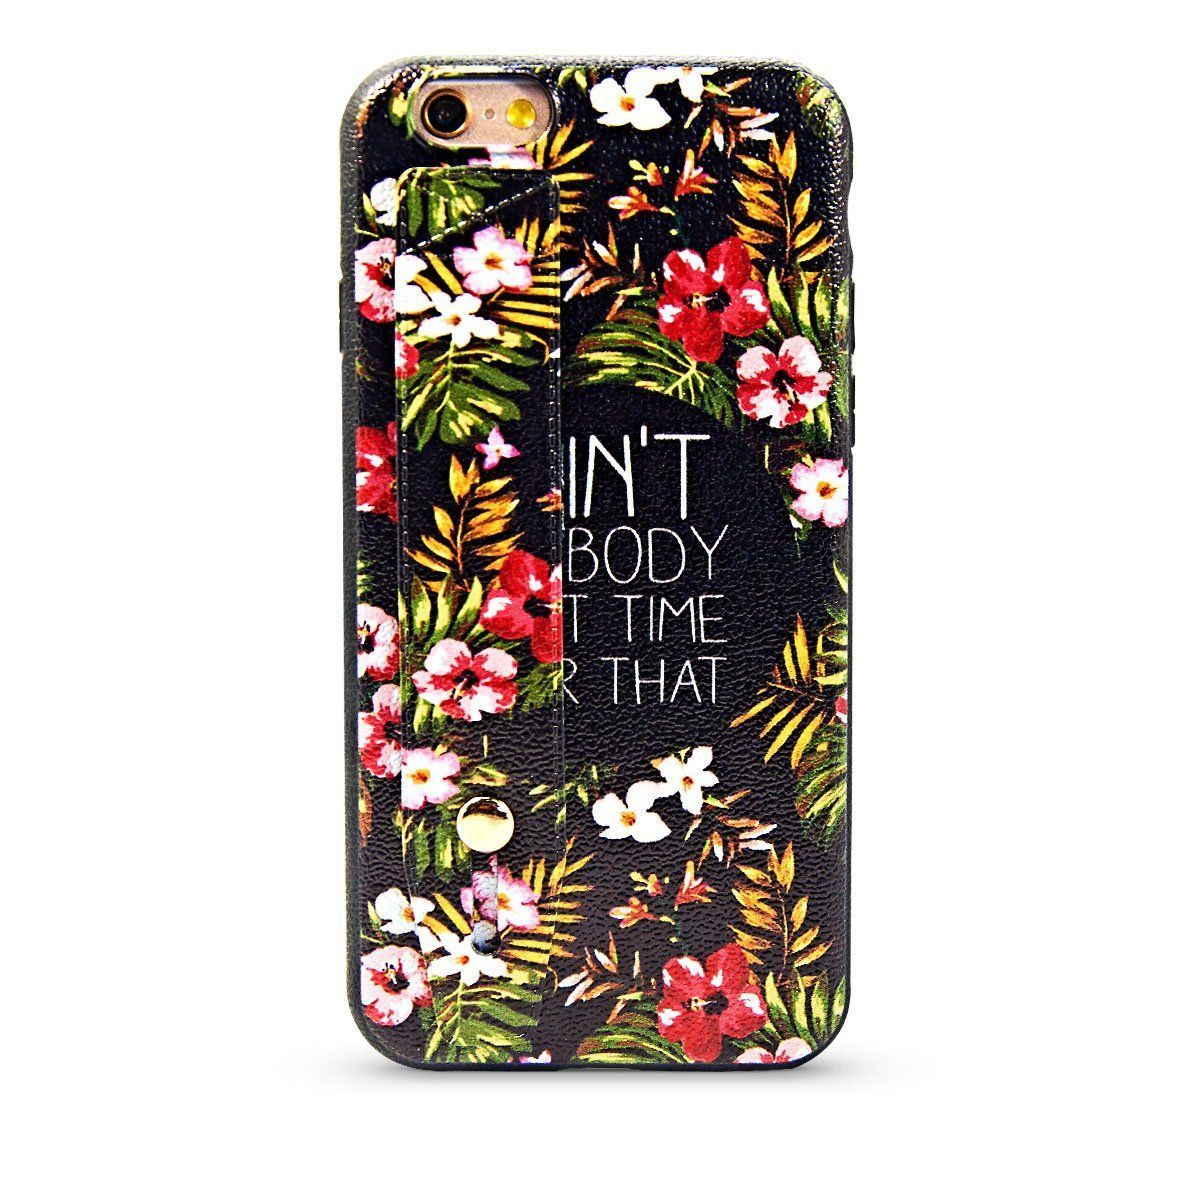 Flower Design Case For iPhone 6 Plus - Flower Text